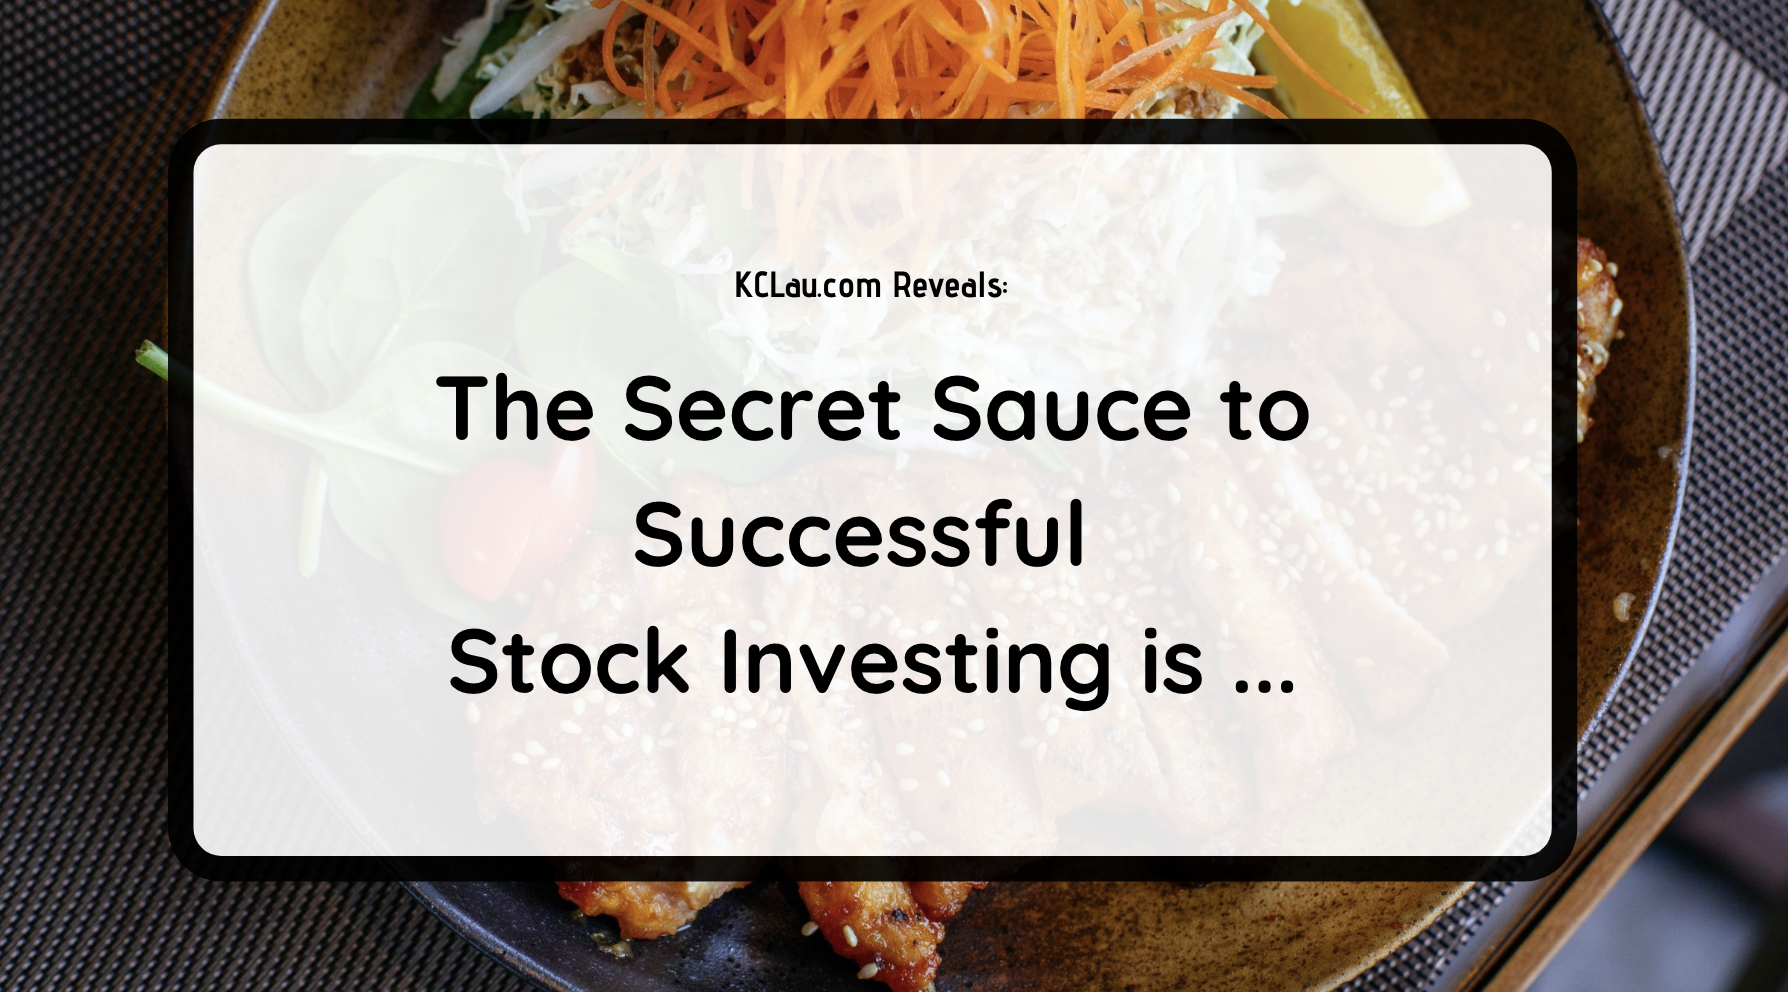 The Secret Sauce to Successful Stock Investing is …